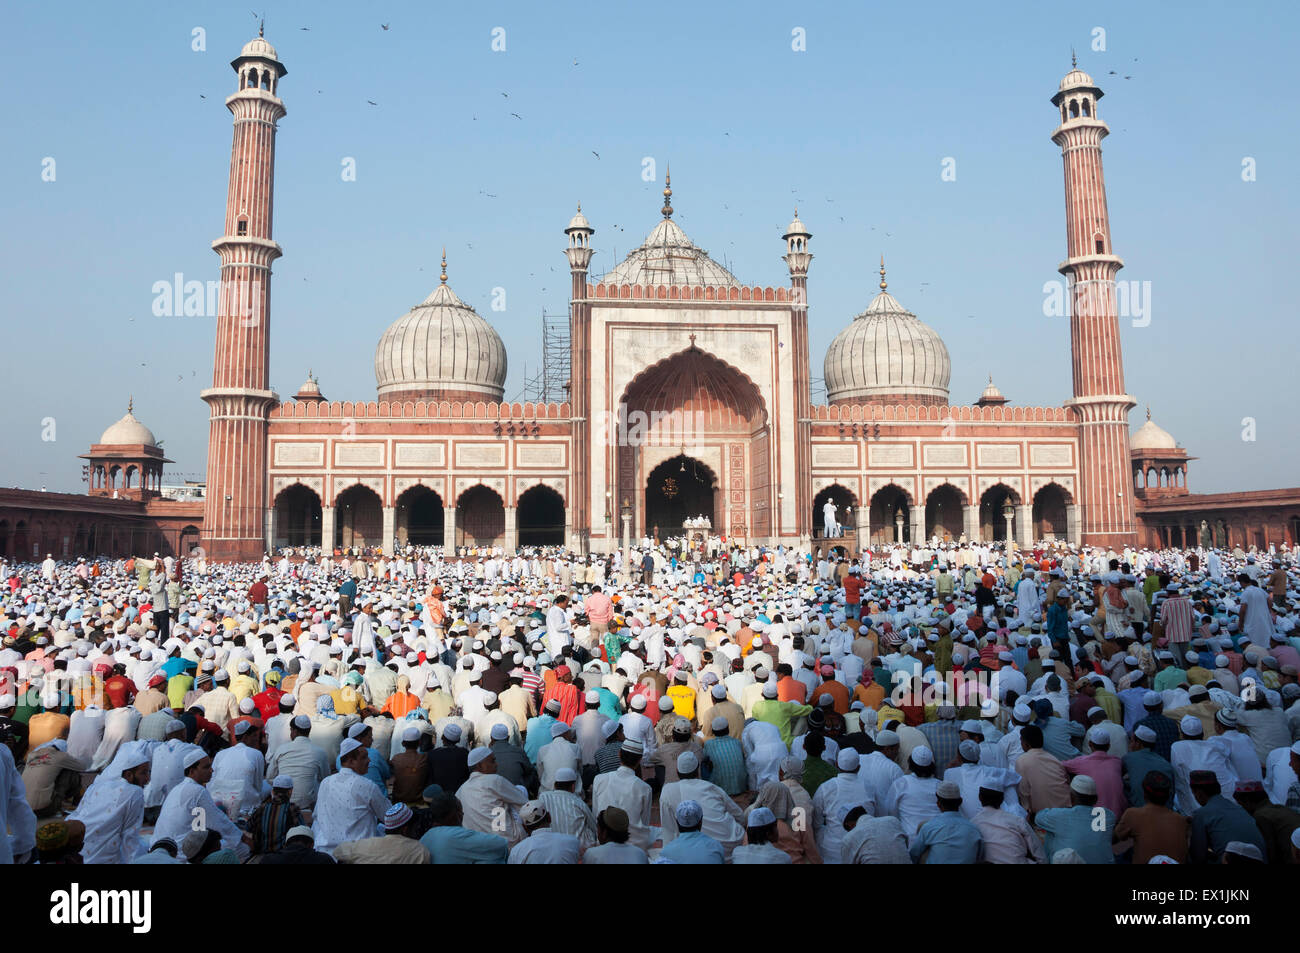 Festival of Eid-ul-fitr being celebrated at the Jama Masjid mosque in old Delhi, India. - Stock Image